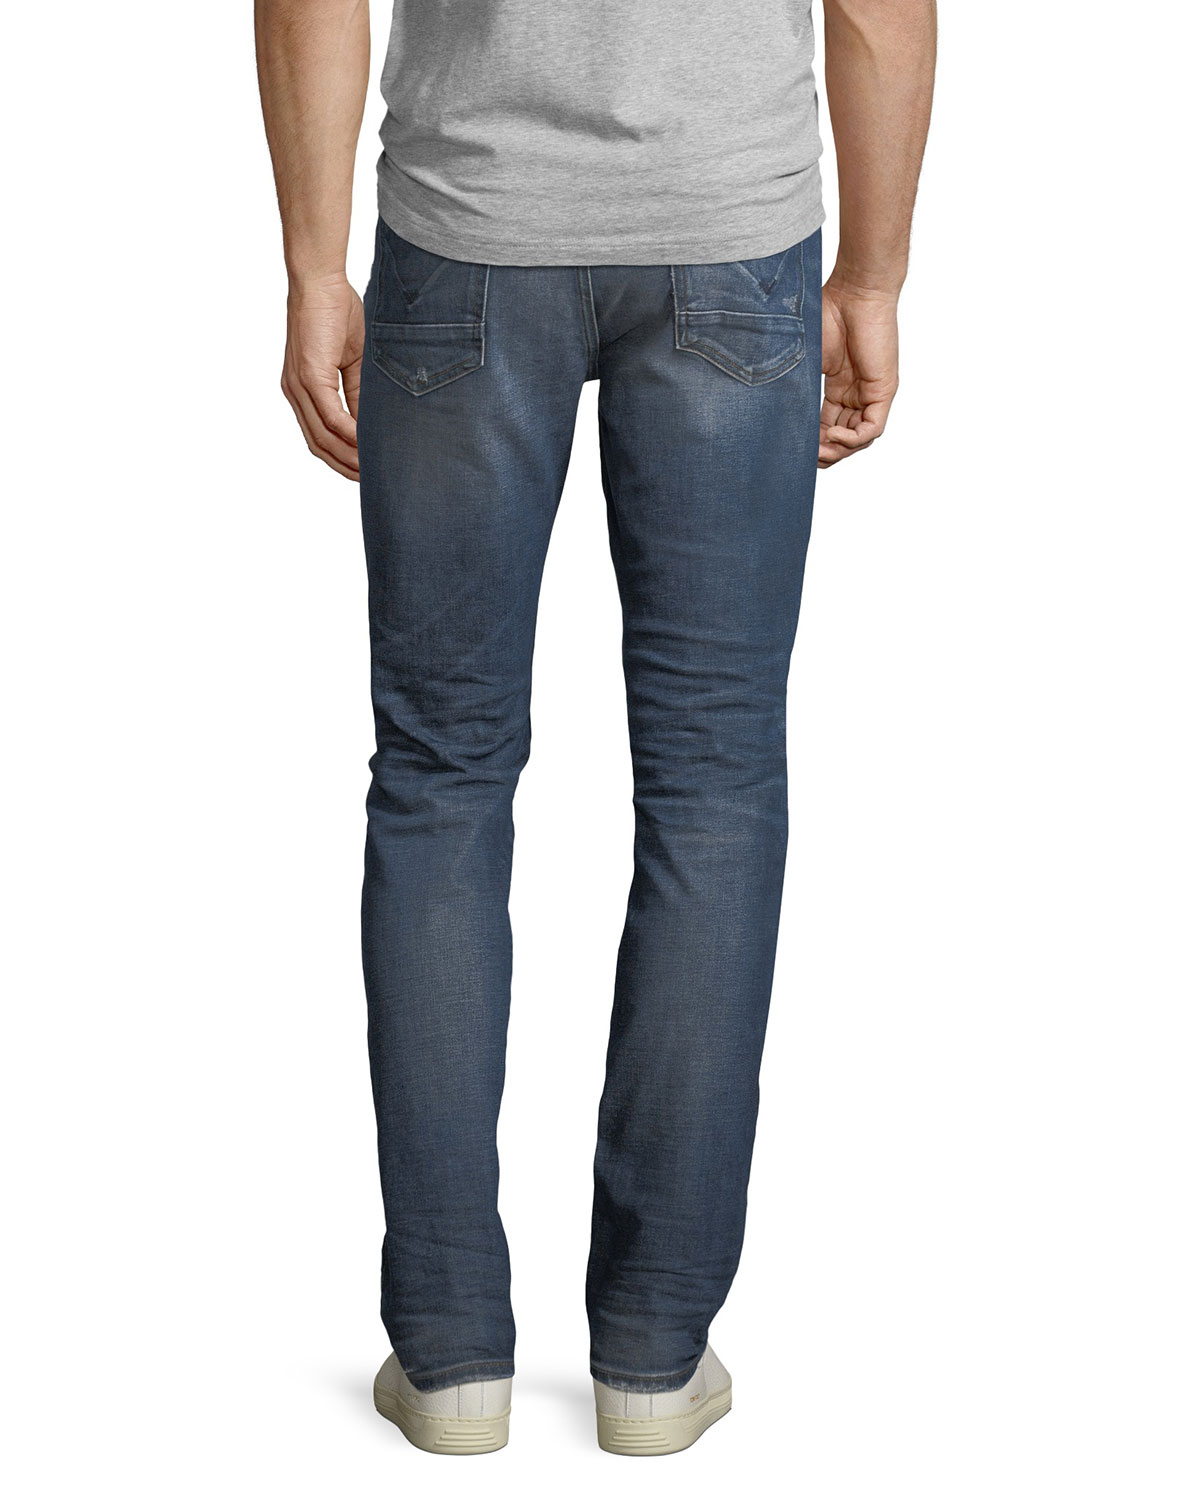 usa cheap sale top design 100% satisfaction guarantee Men's Sartor Slouchy Distressed Skinny Jeans, All City Blue